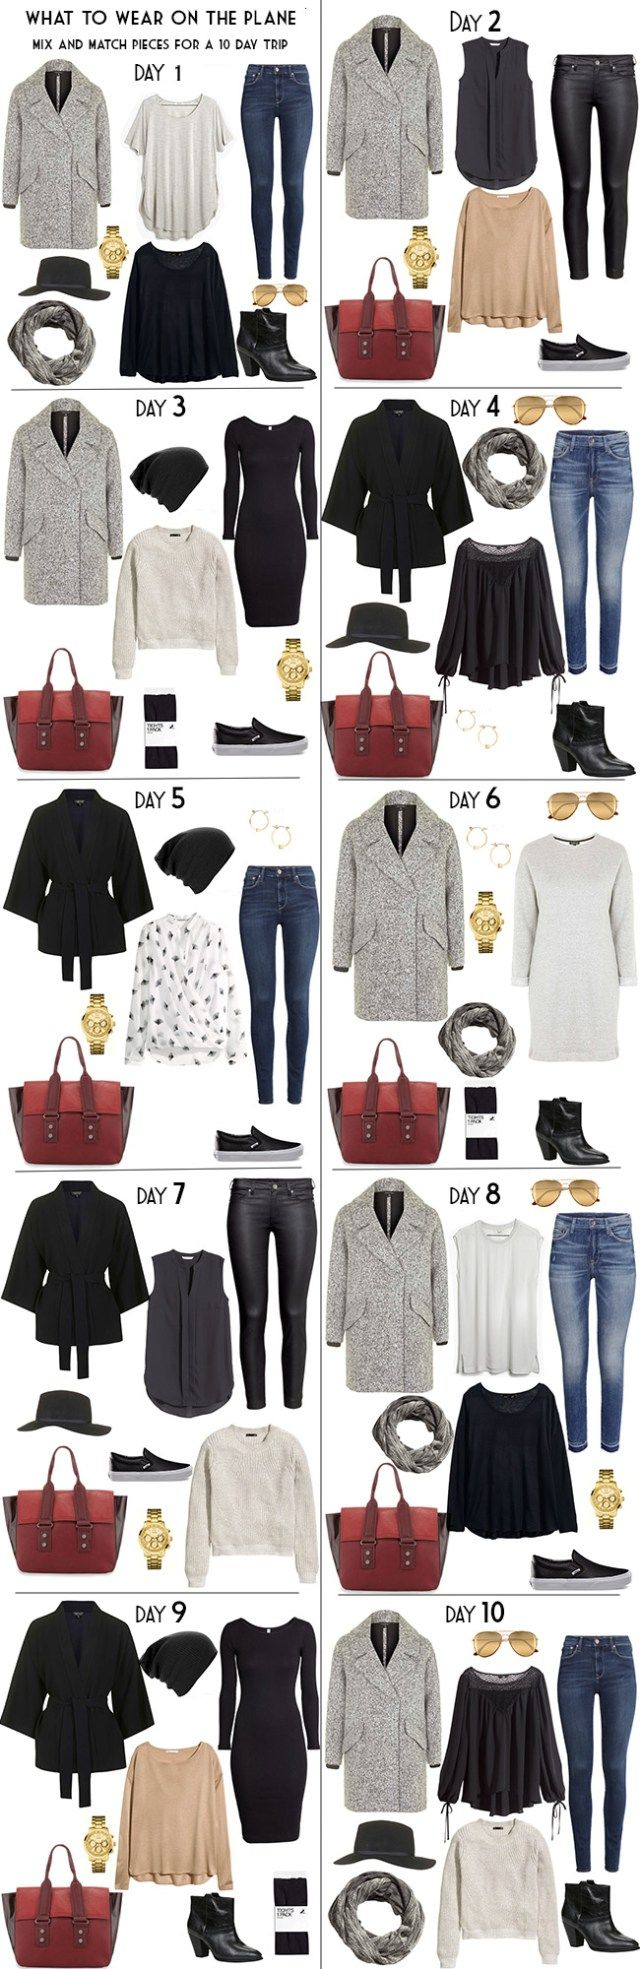 What to Pack for 10 Days in Vienna, Austria July 26, 2015 Sara